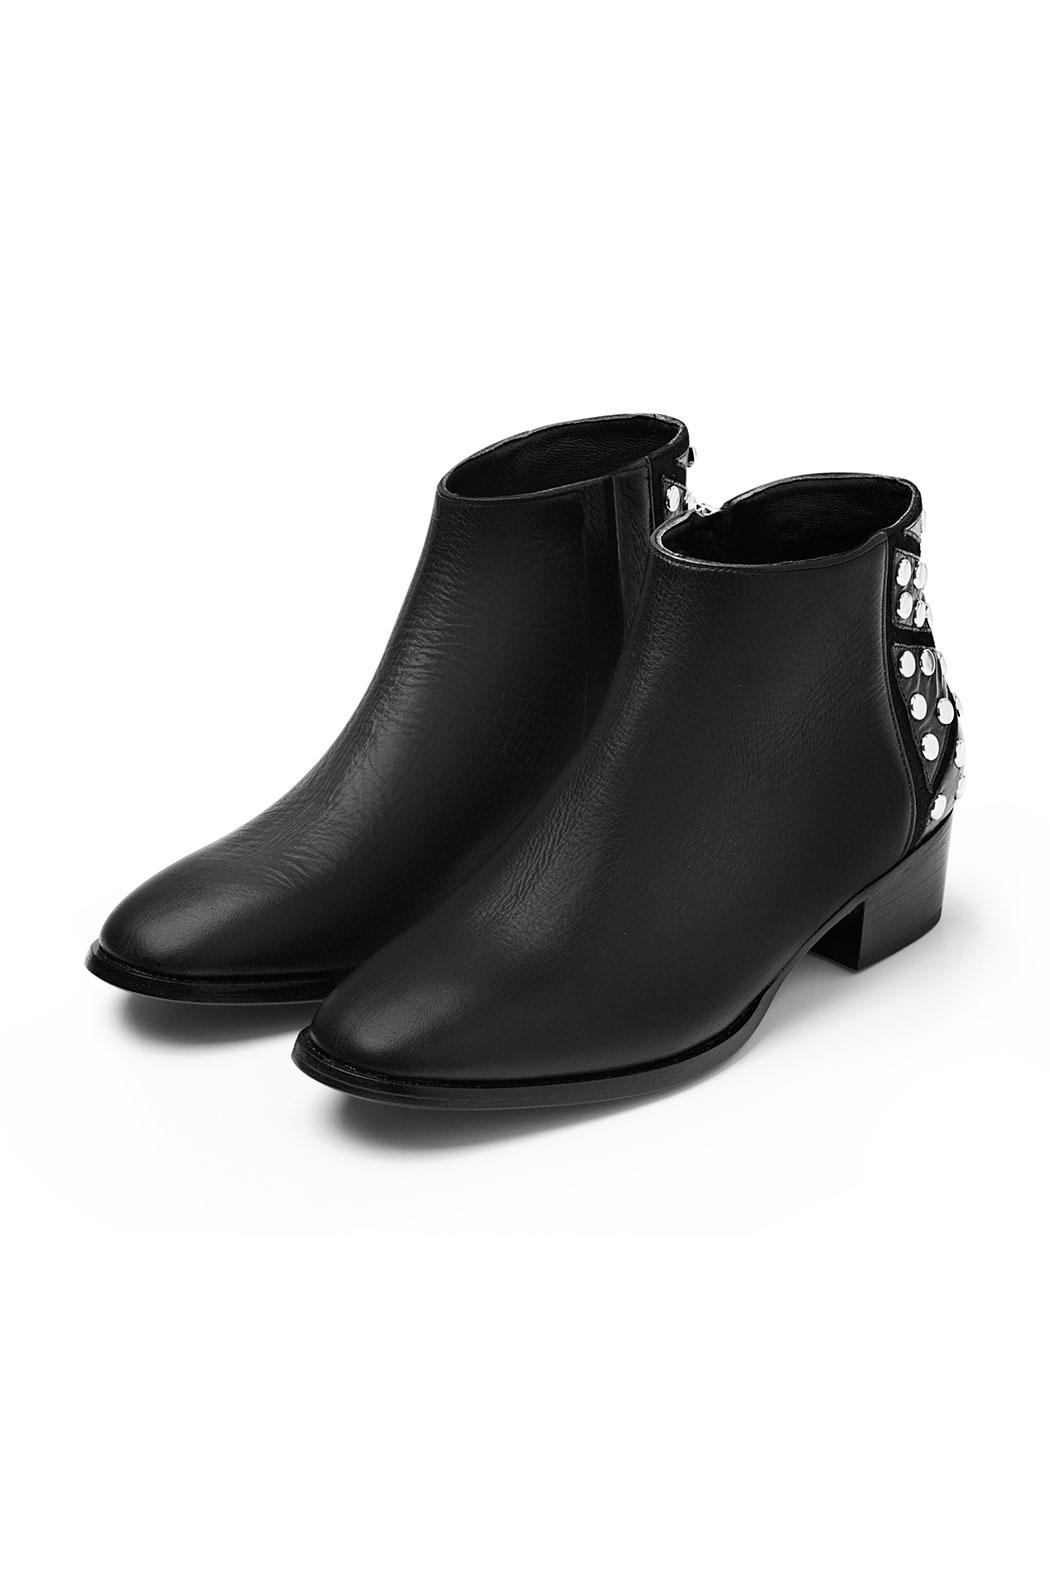 Marion Studs Boots